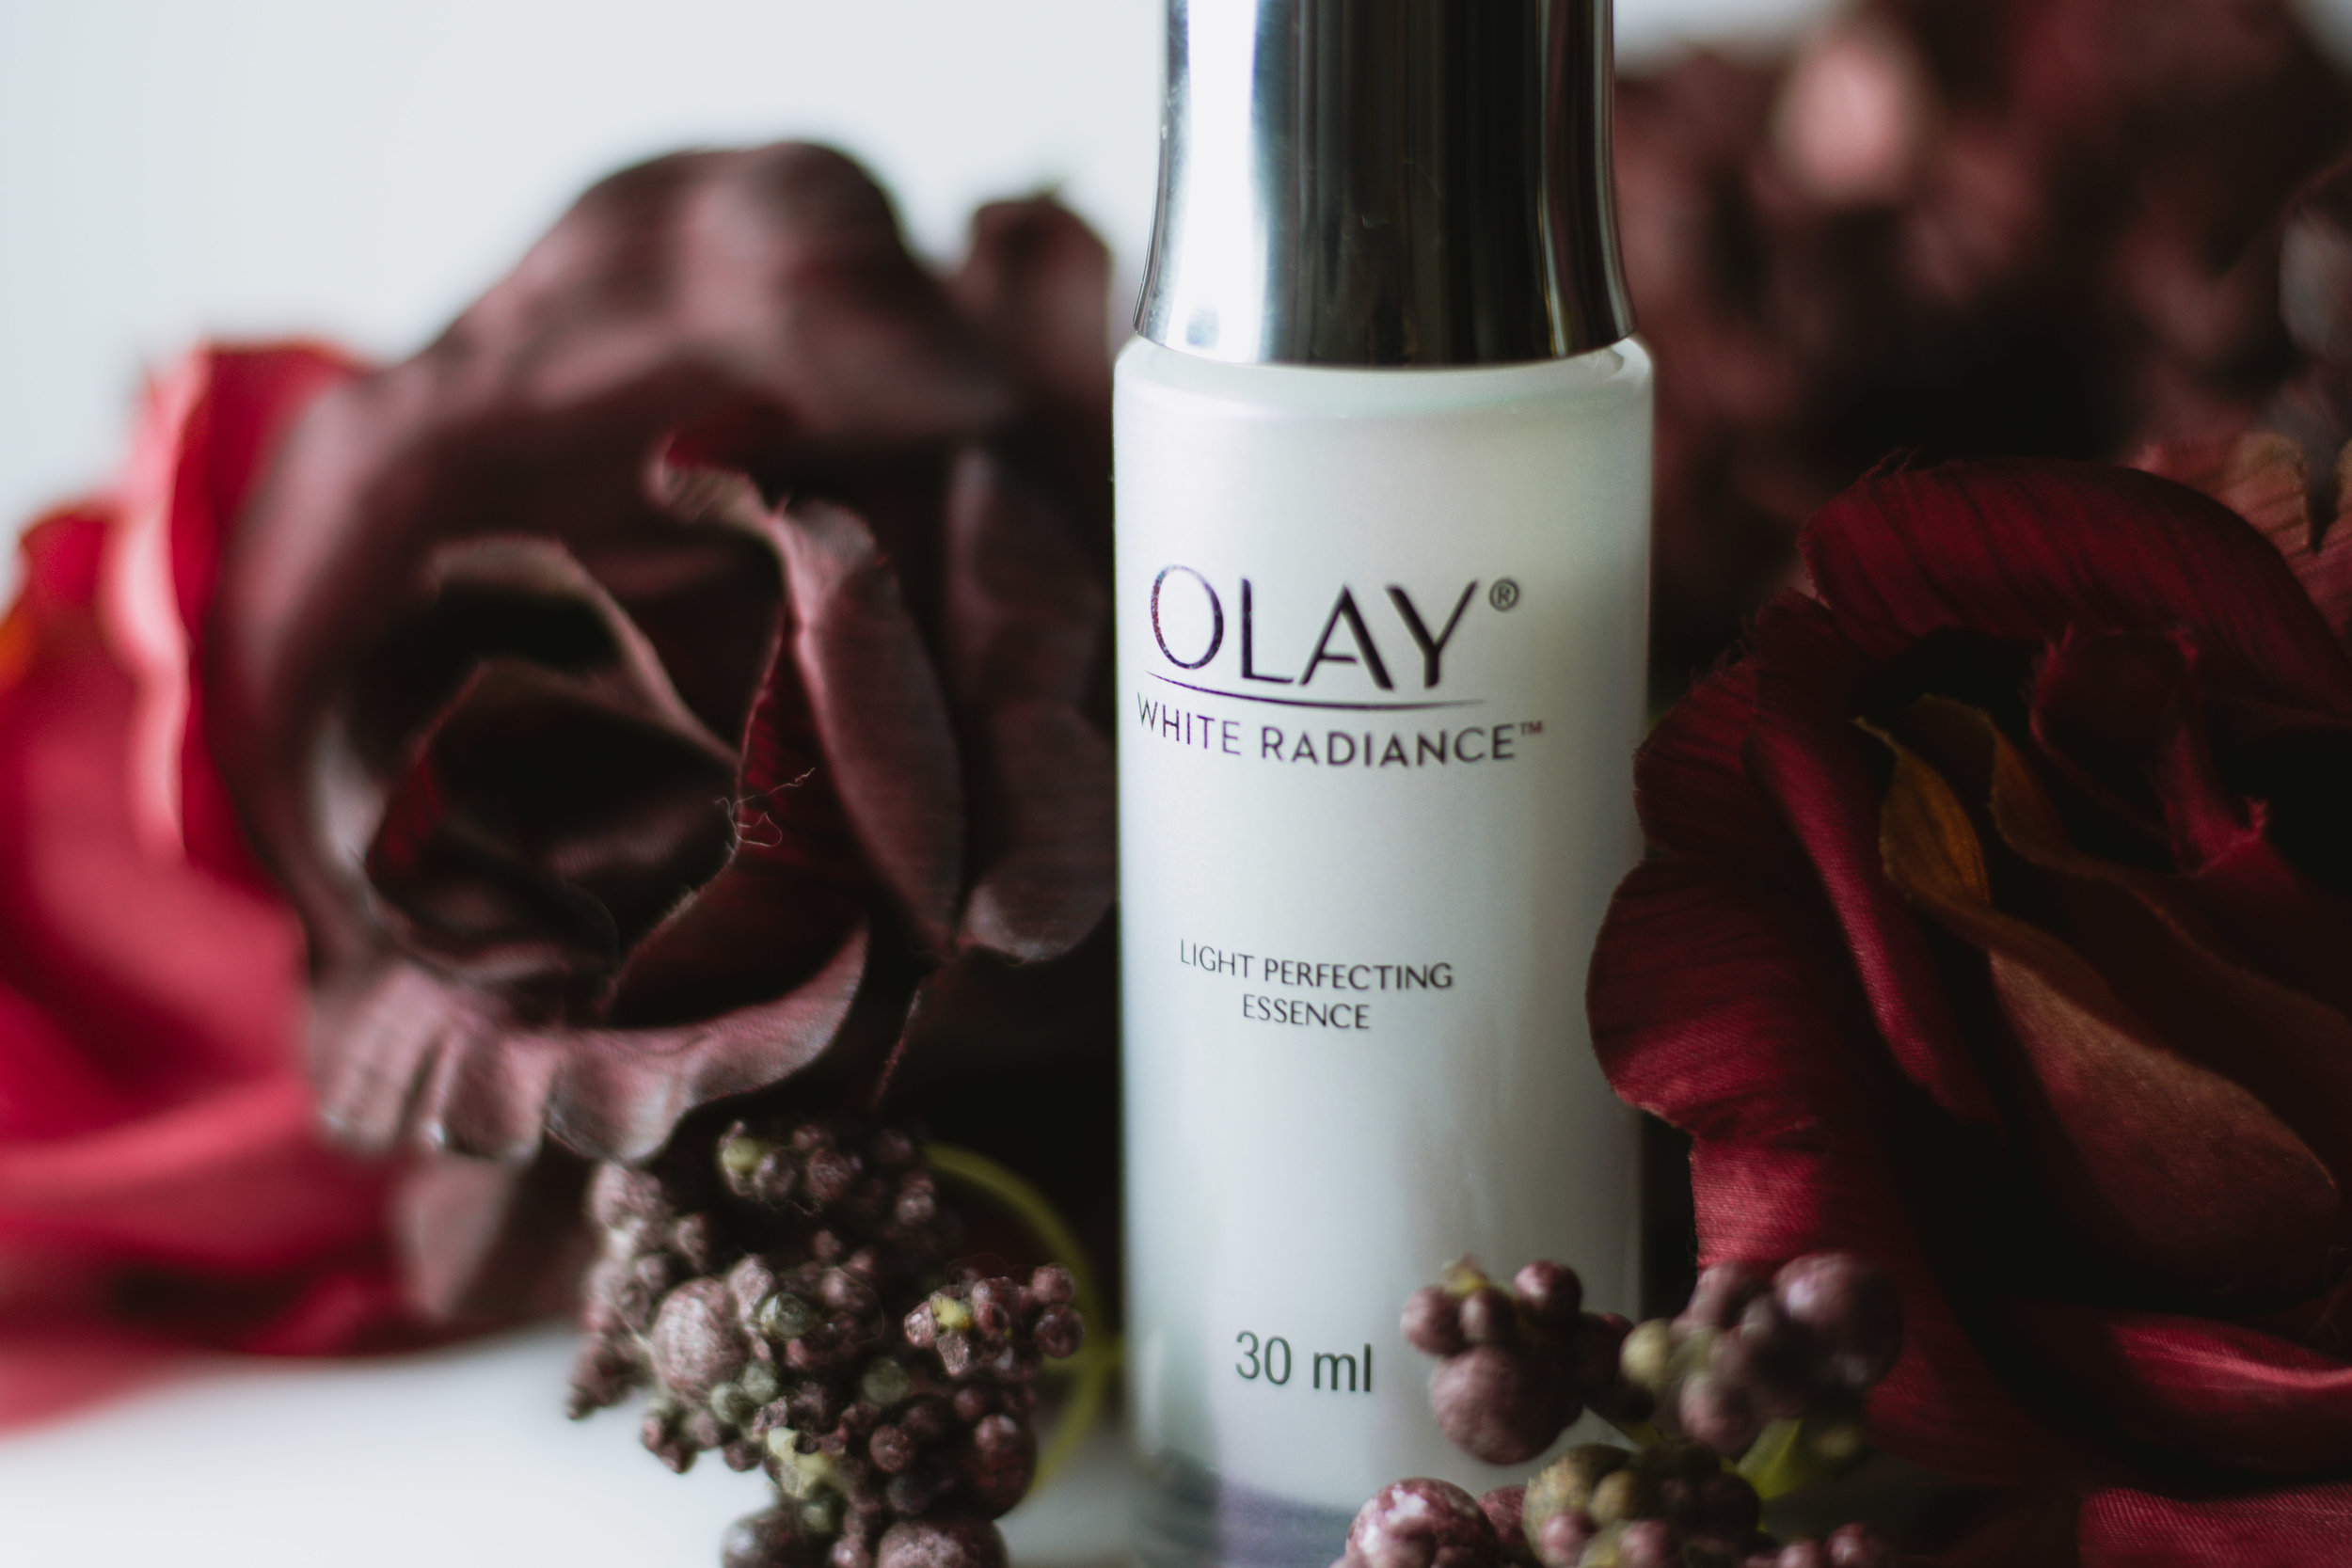 Olay-regenerist-micro-sculpting-cream_white-radiance-light-perfecting-essence_review-philippines_7.jpg